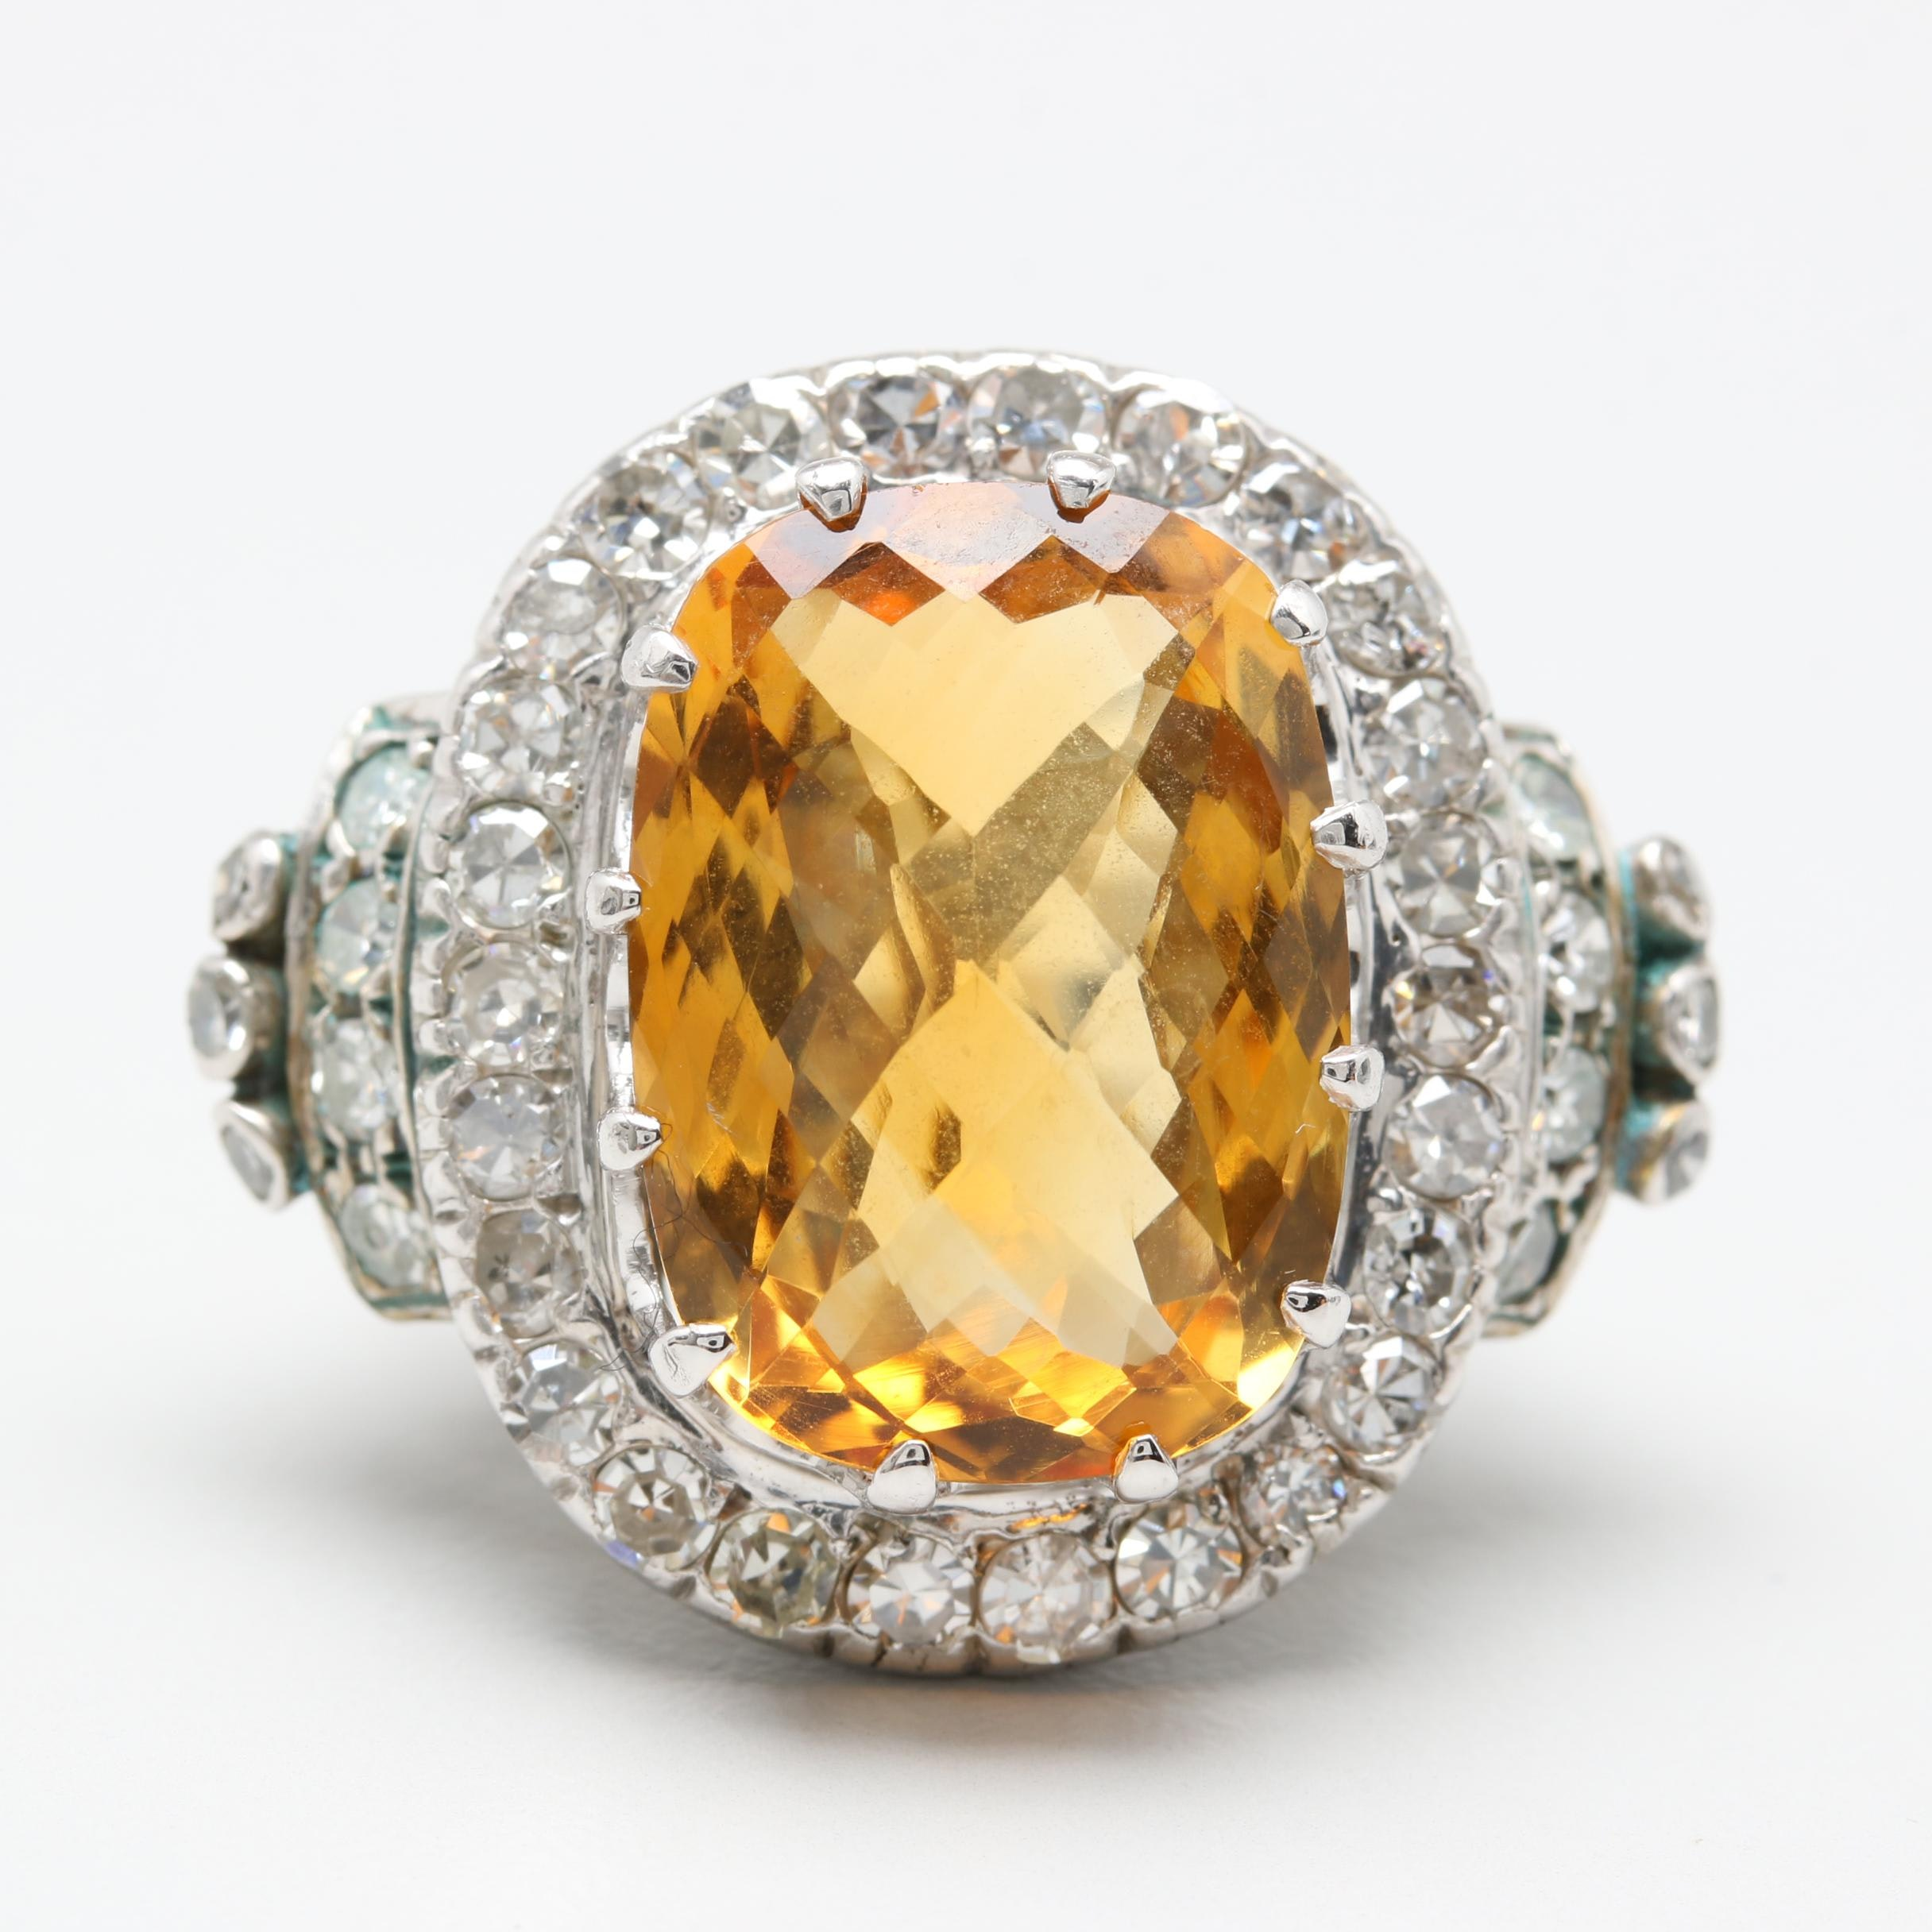 10K and 14K White Gold 12.44 CT Citrine and 1.57 CTW Diamond Ring